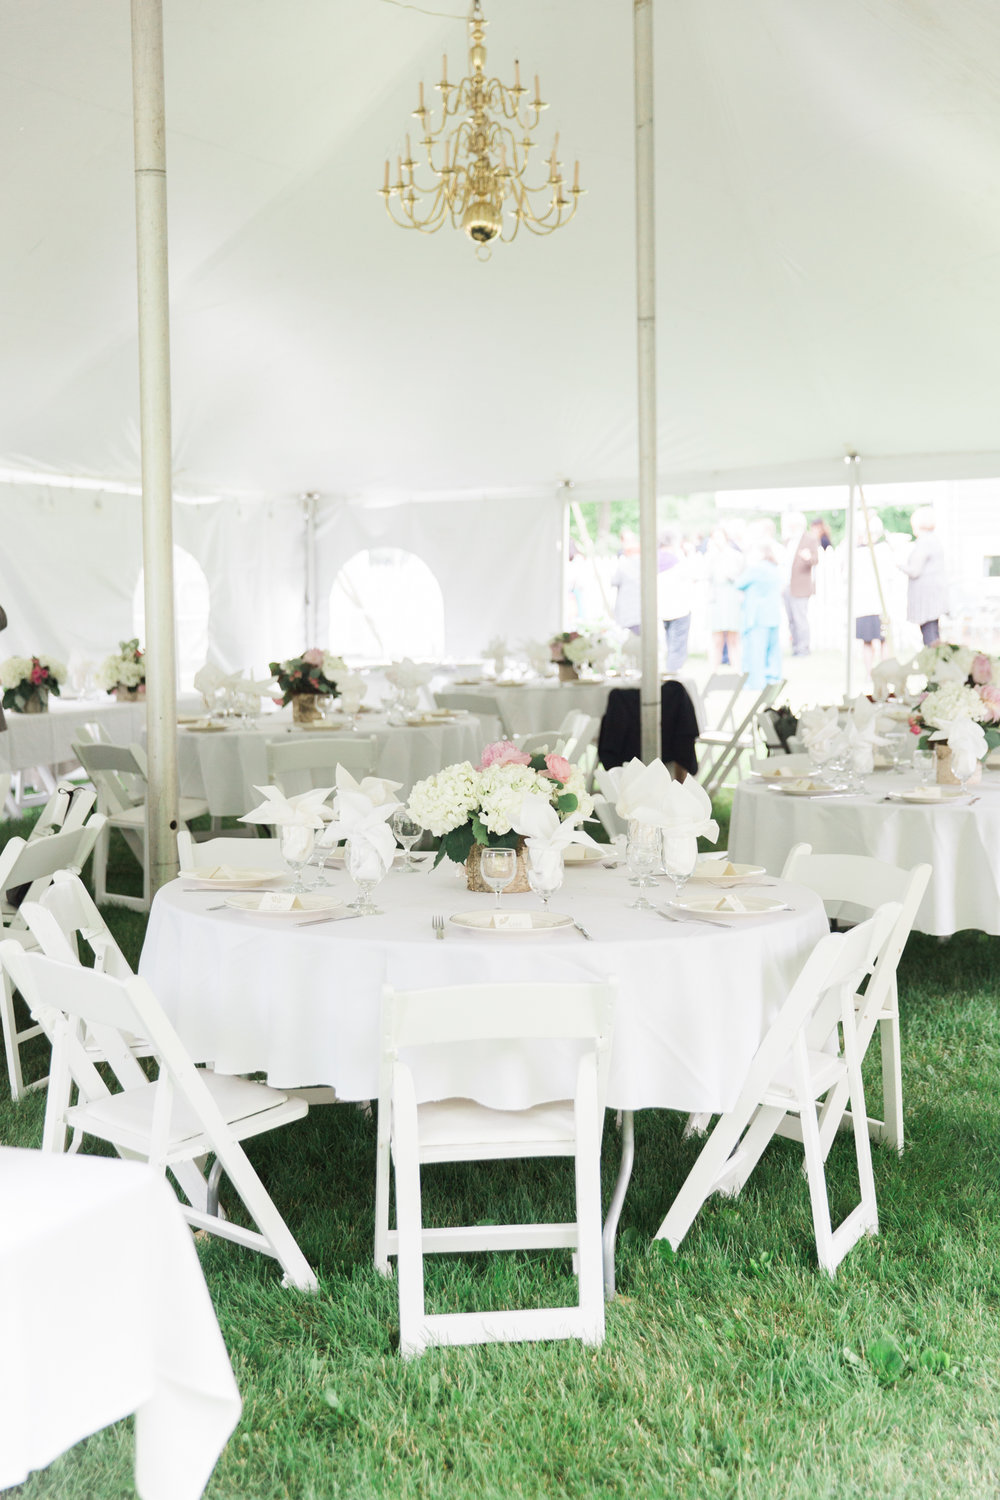 Tented Weddings in Massachsuetts